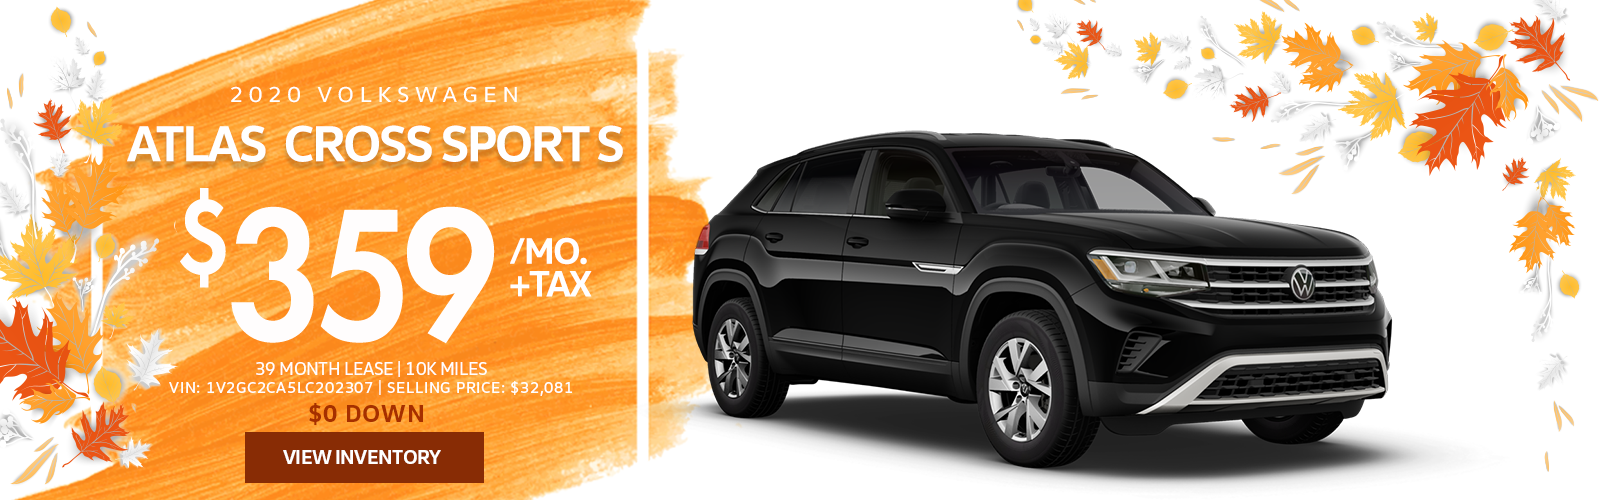 Lease a 2020 Atlas Cross Sport for $359/mo.